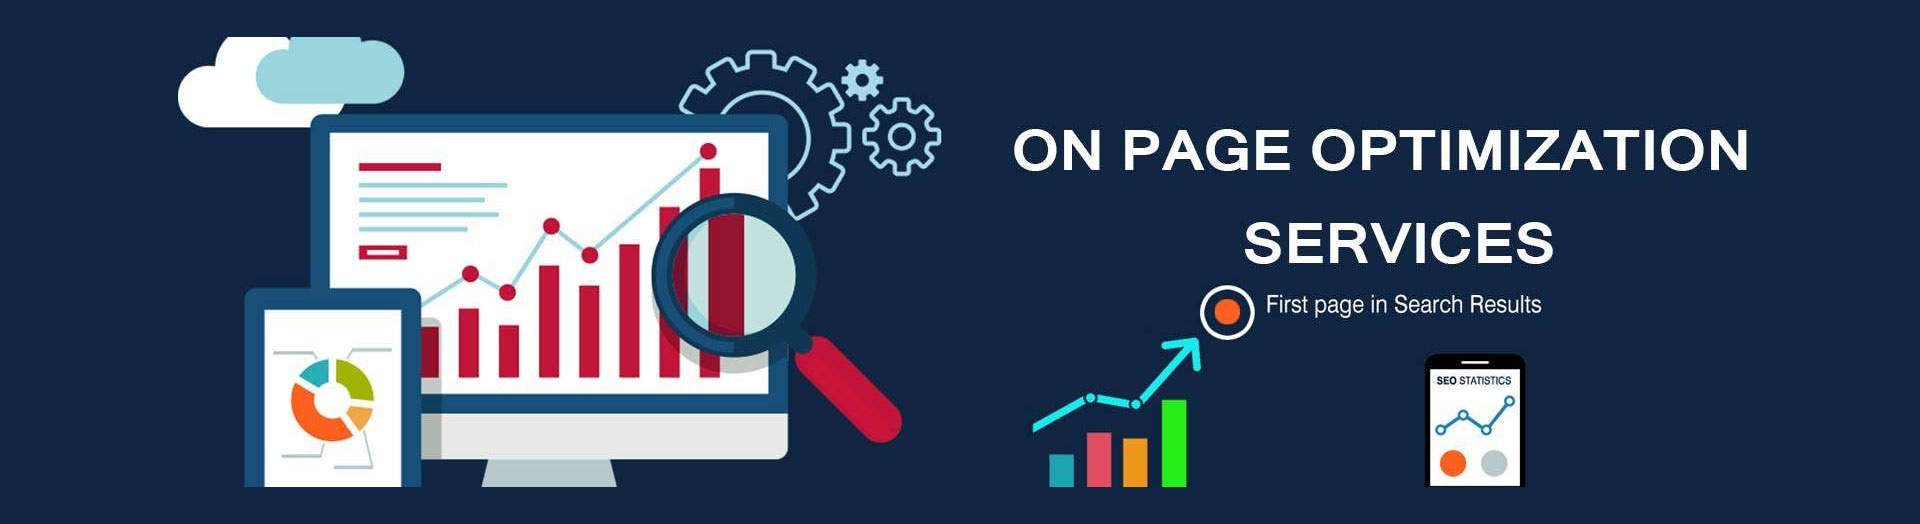 SEO Onpage Optimization Services